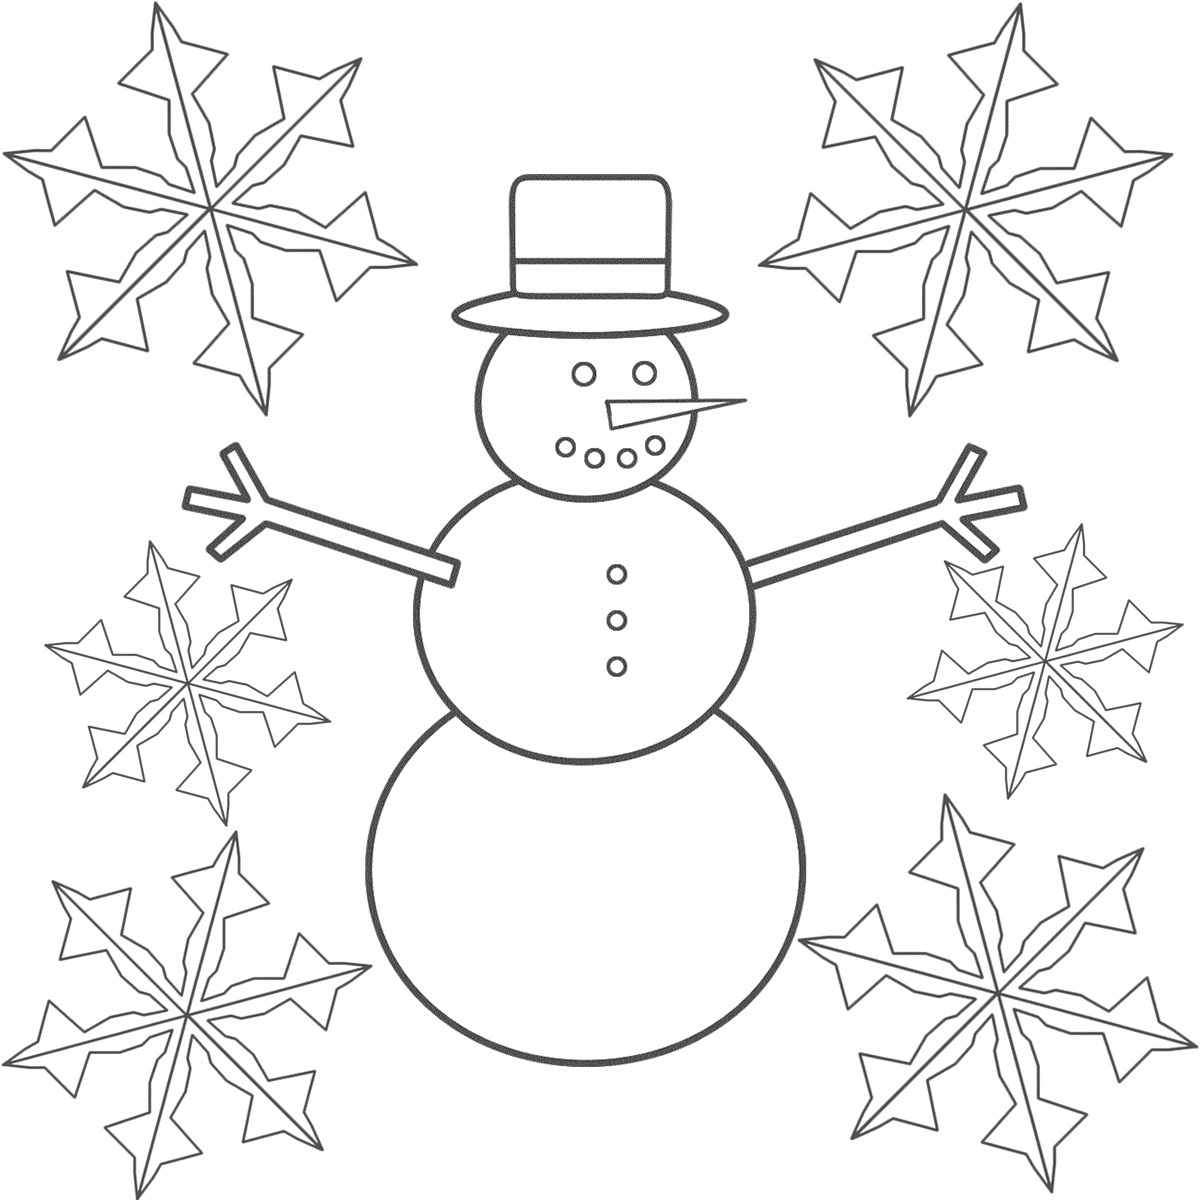 Simple Snowflake Coloring Pages Printable Coloring Coloring Pages